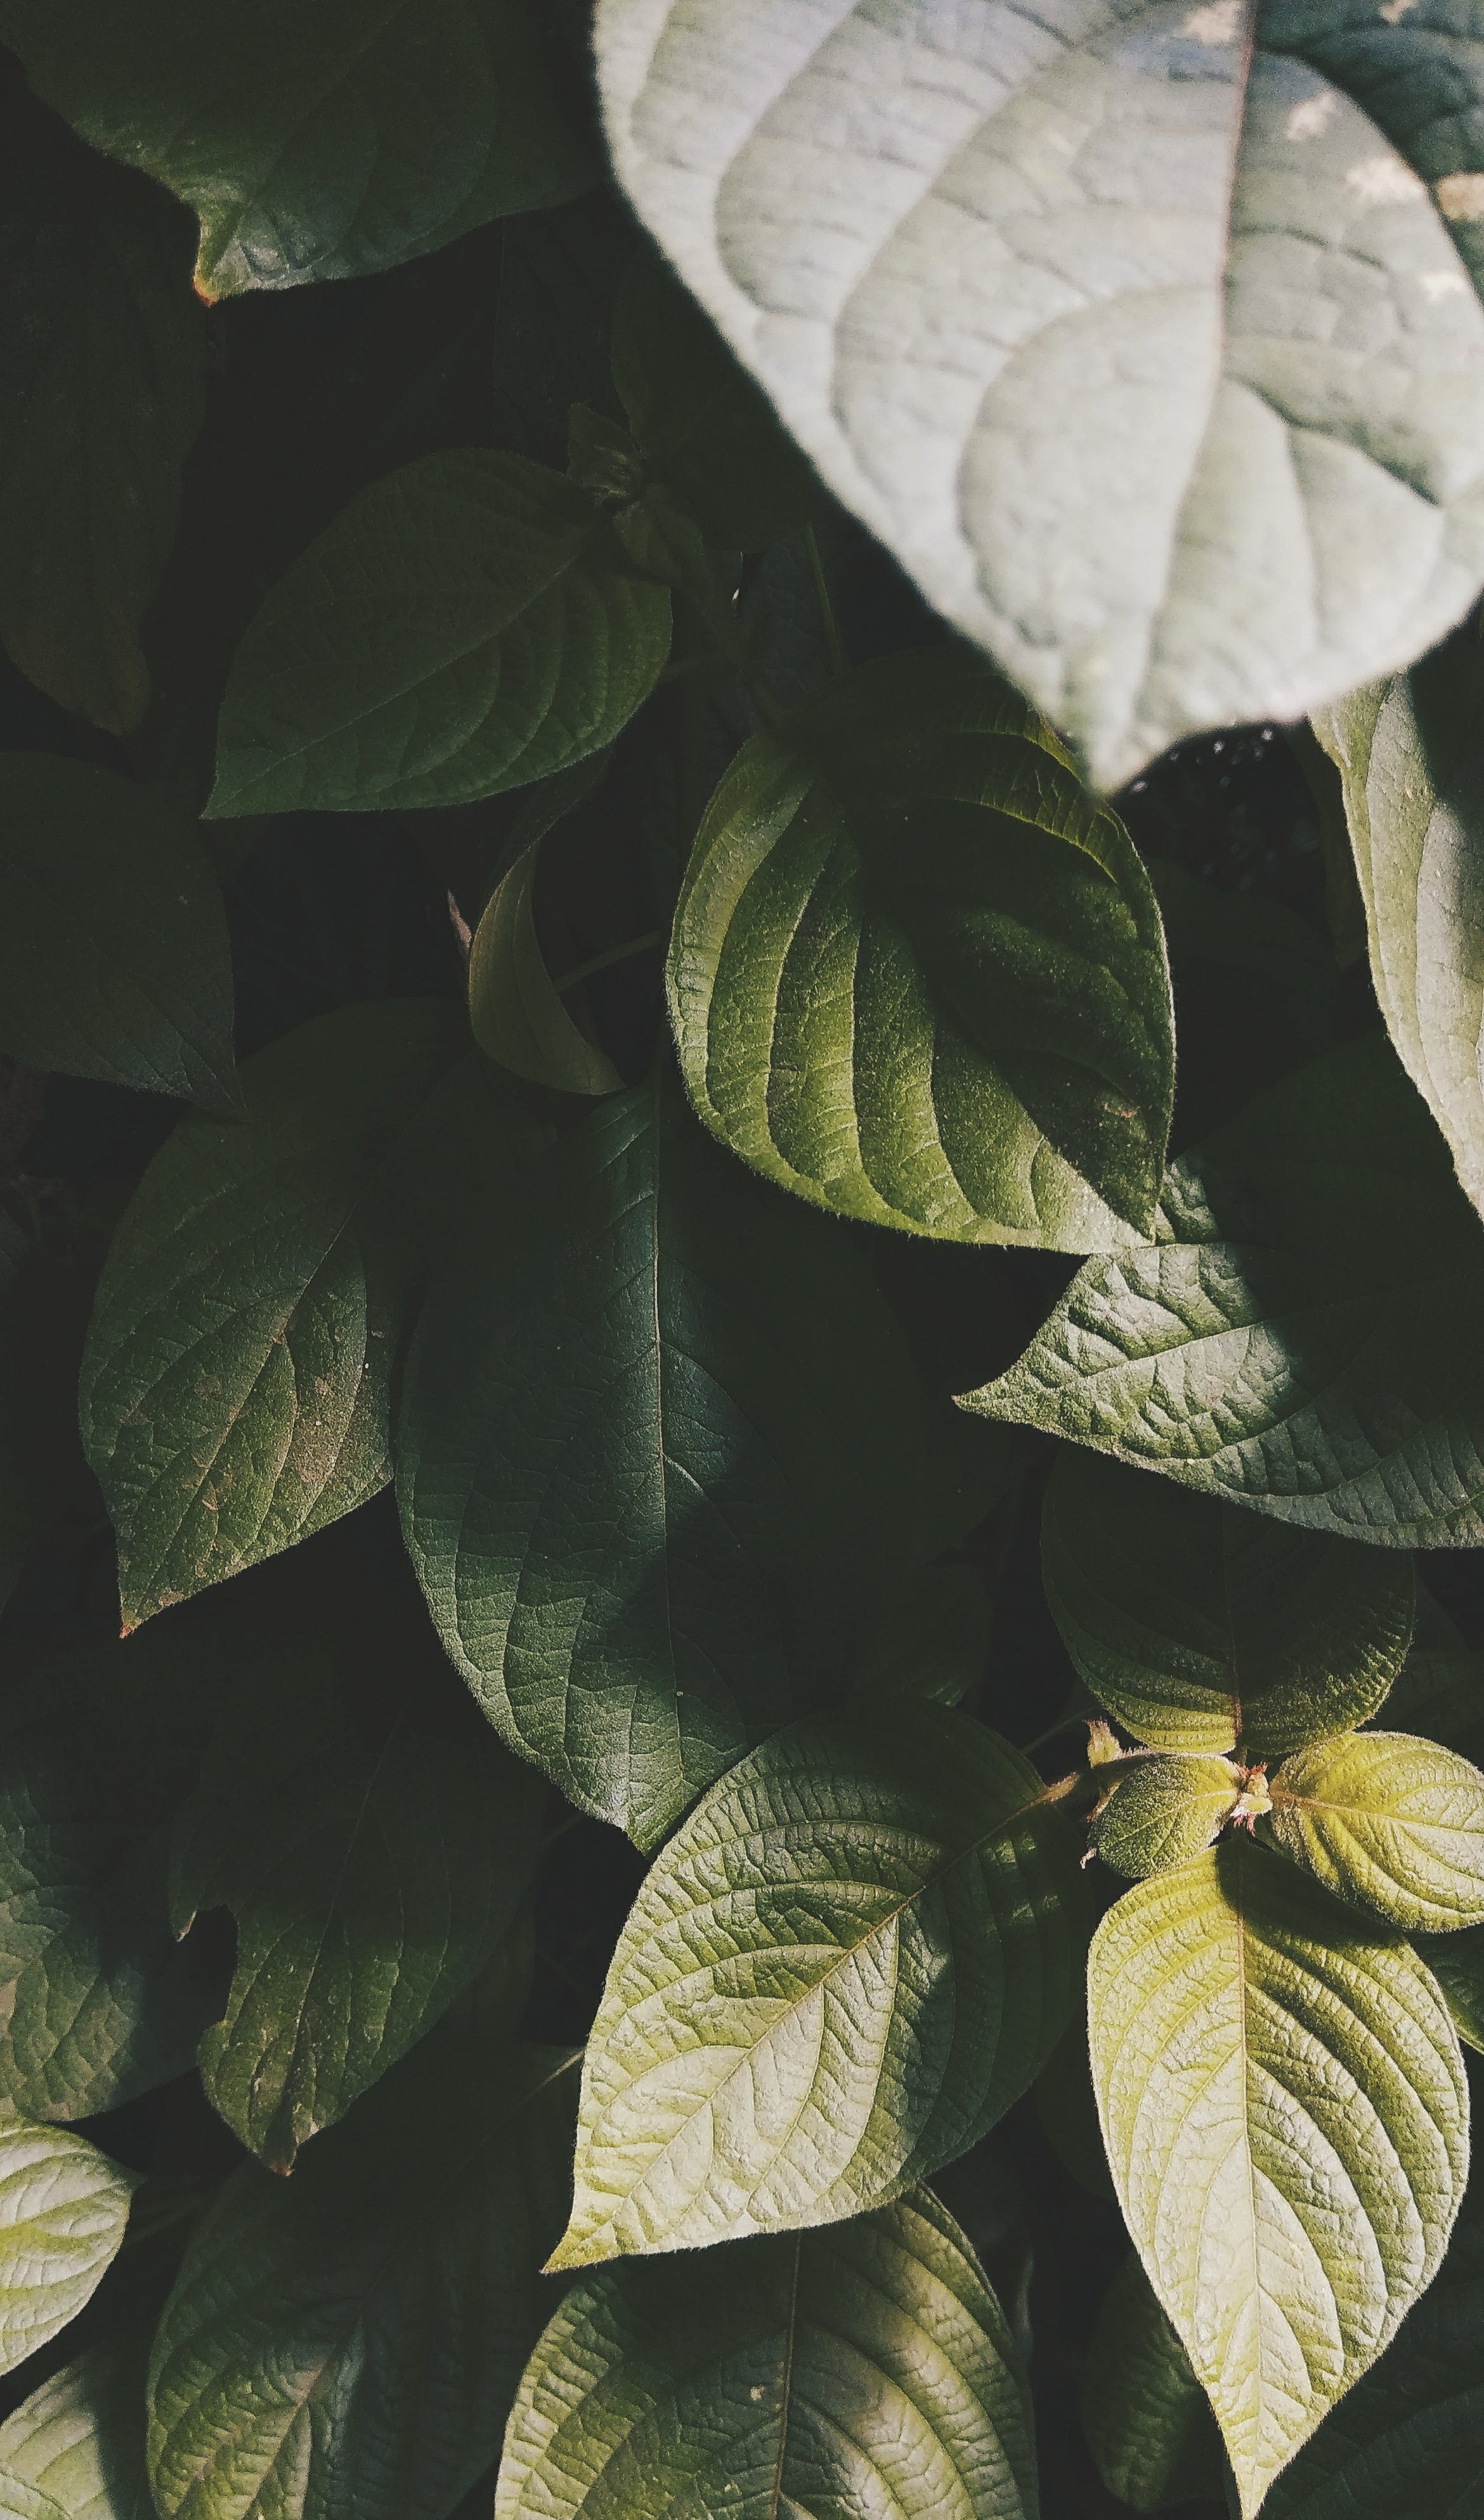 Shallow Focus Photography of Green Leaves